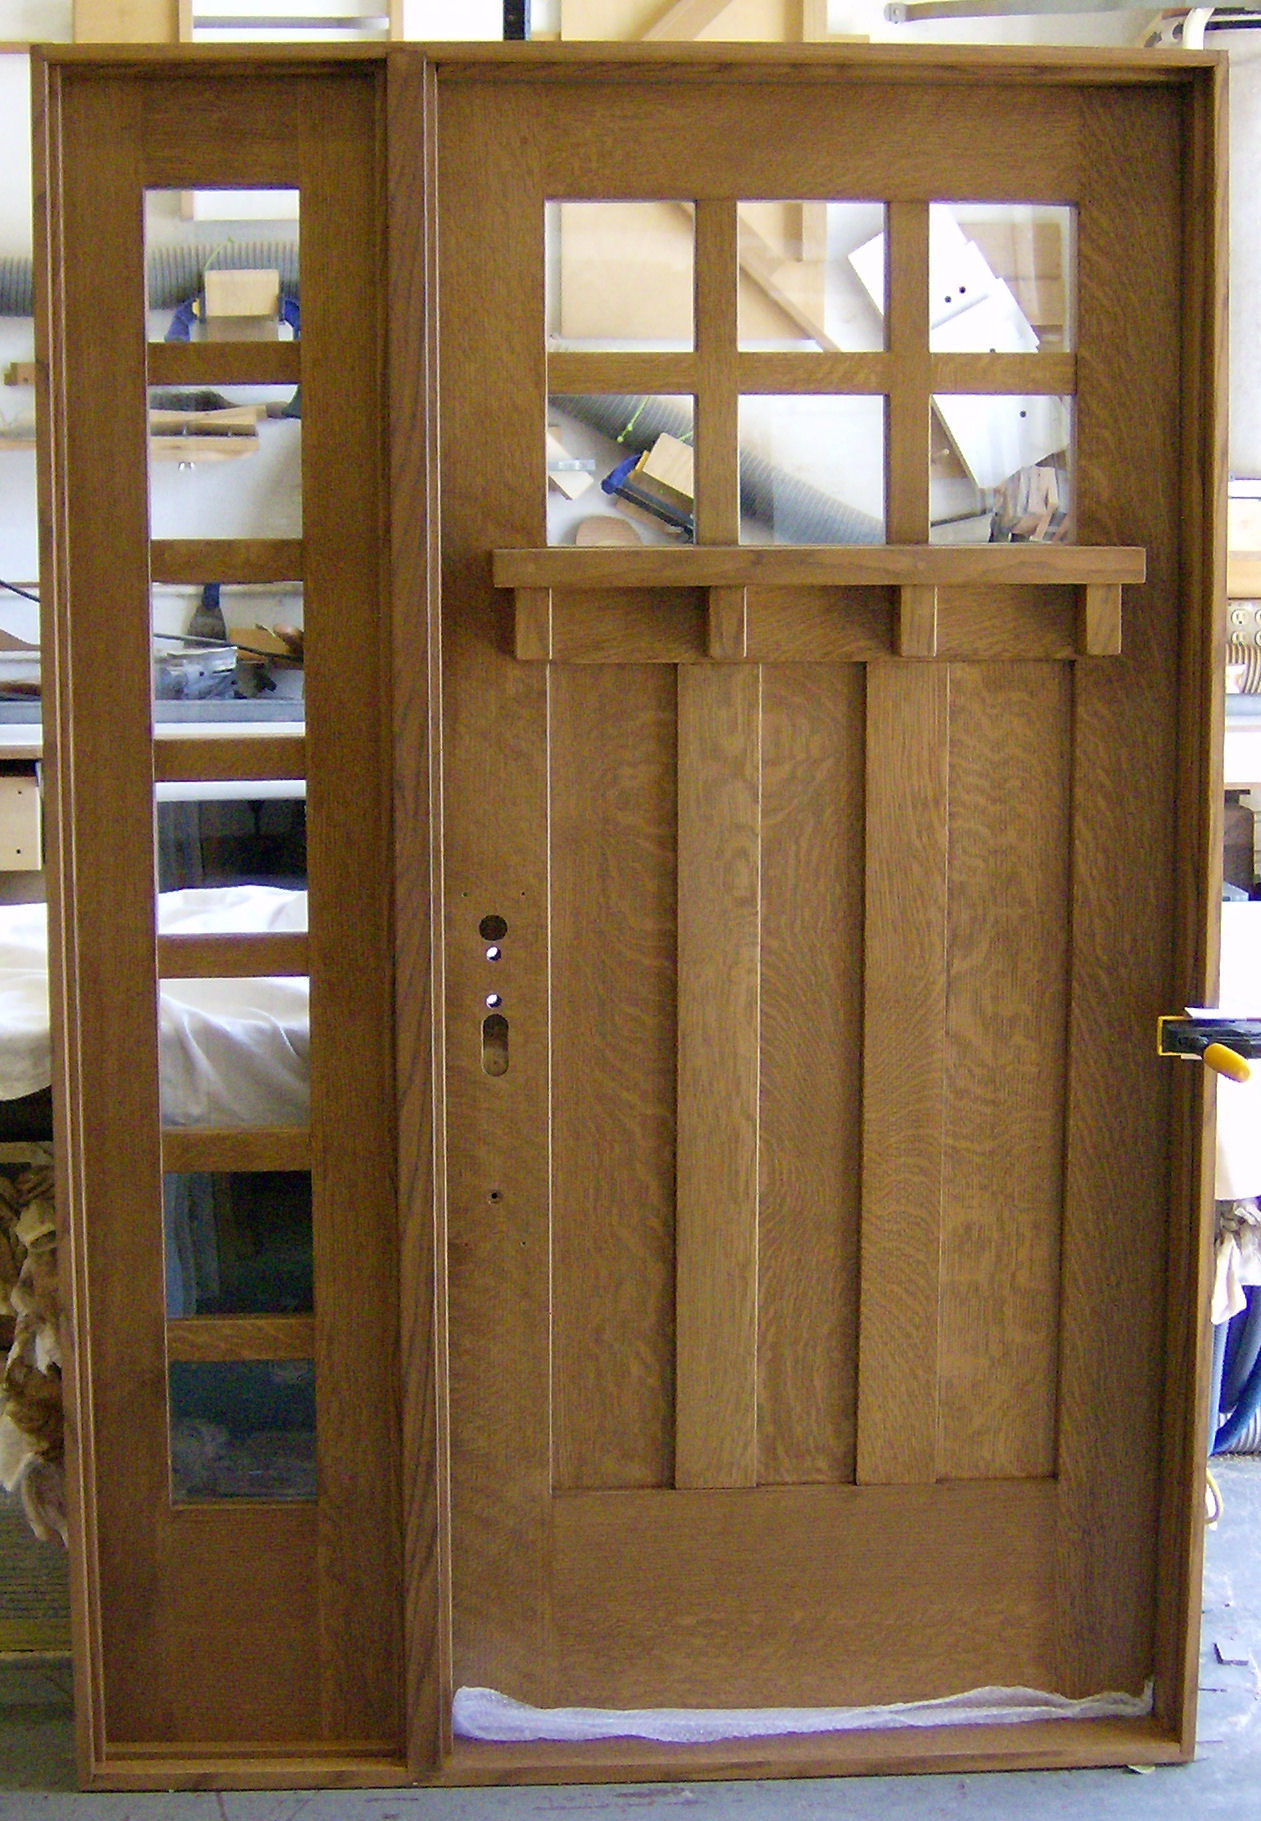 1821 #674724  Of Oak Workshop Authentic Craftsman & Mission Style Door Designs pic Mission Style Entry Doors 40811261